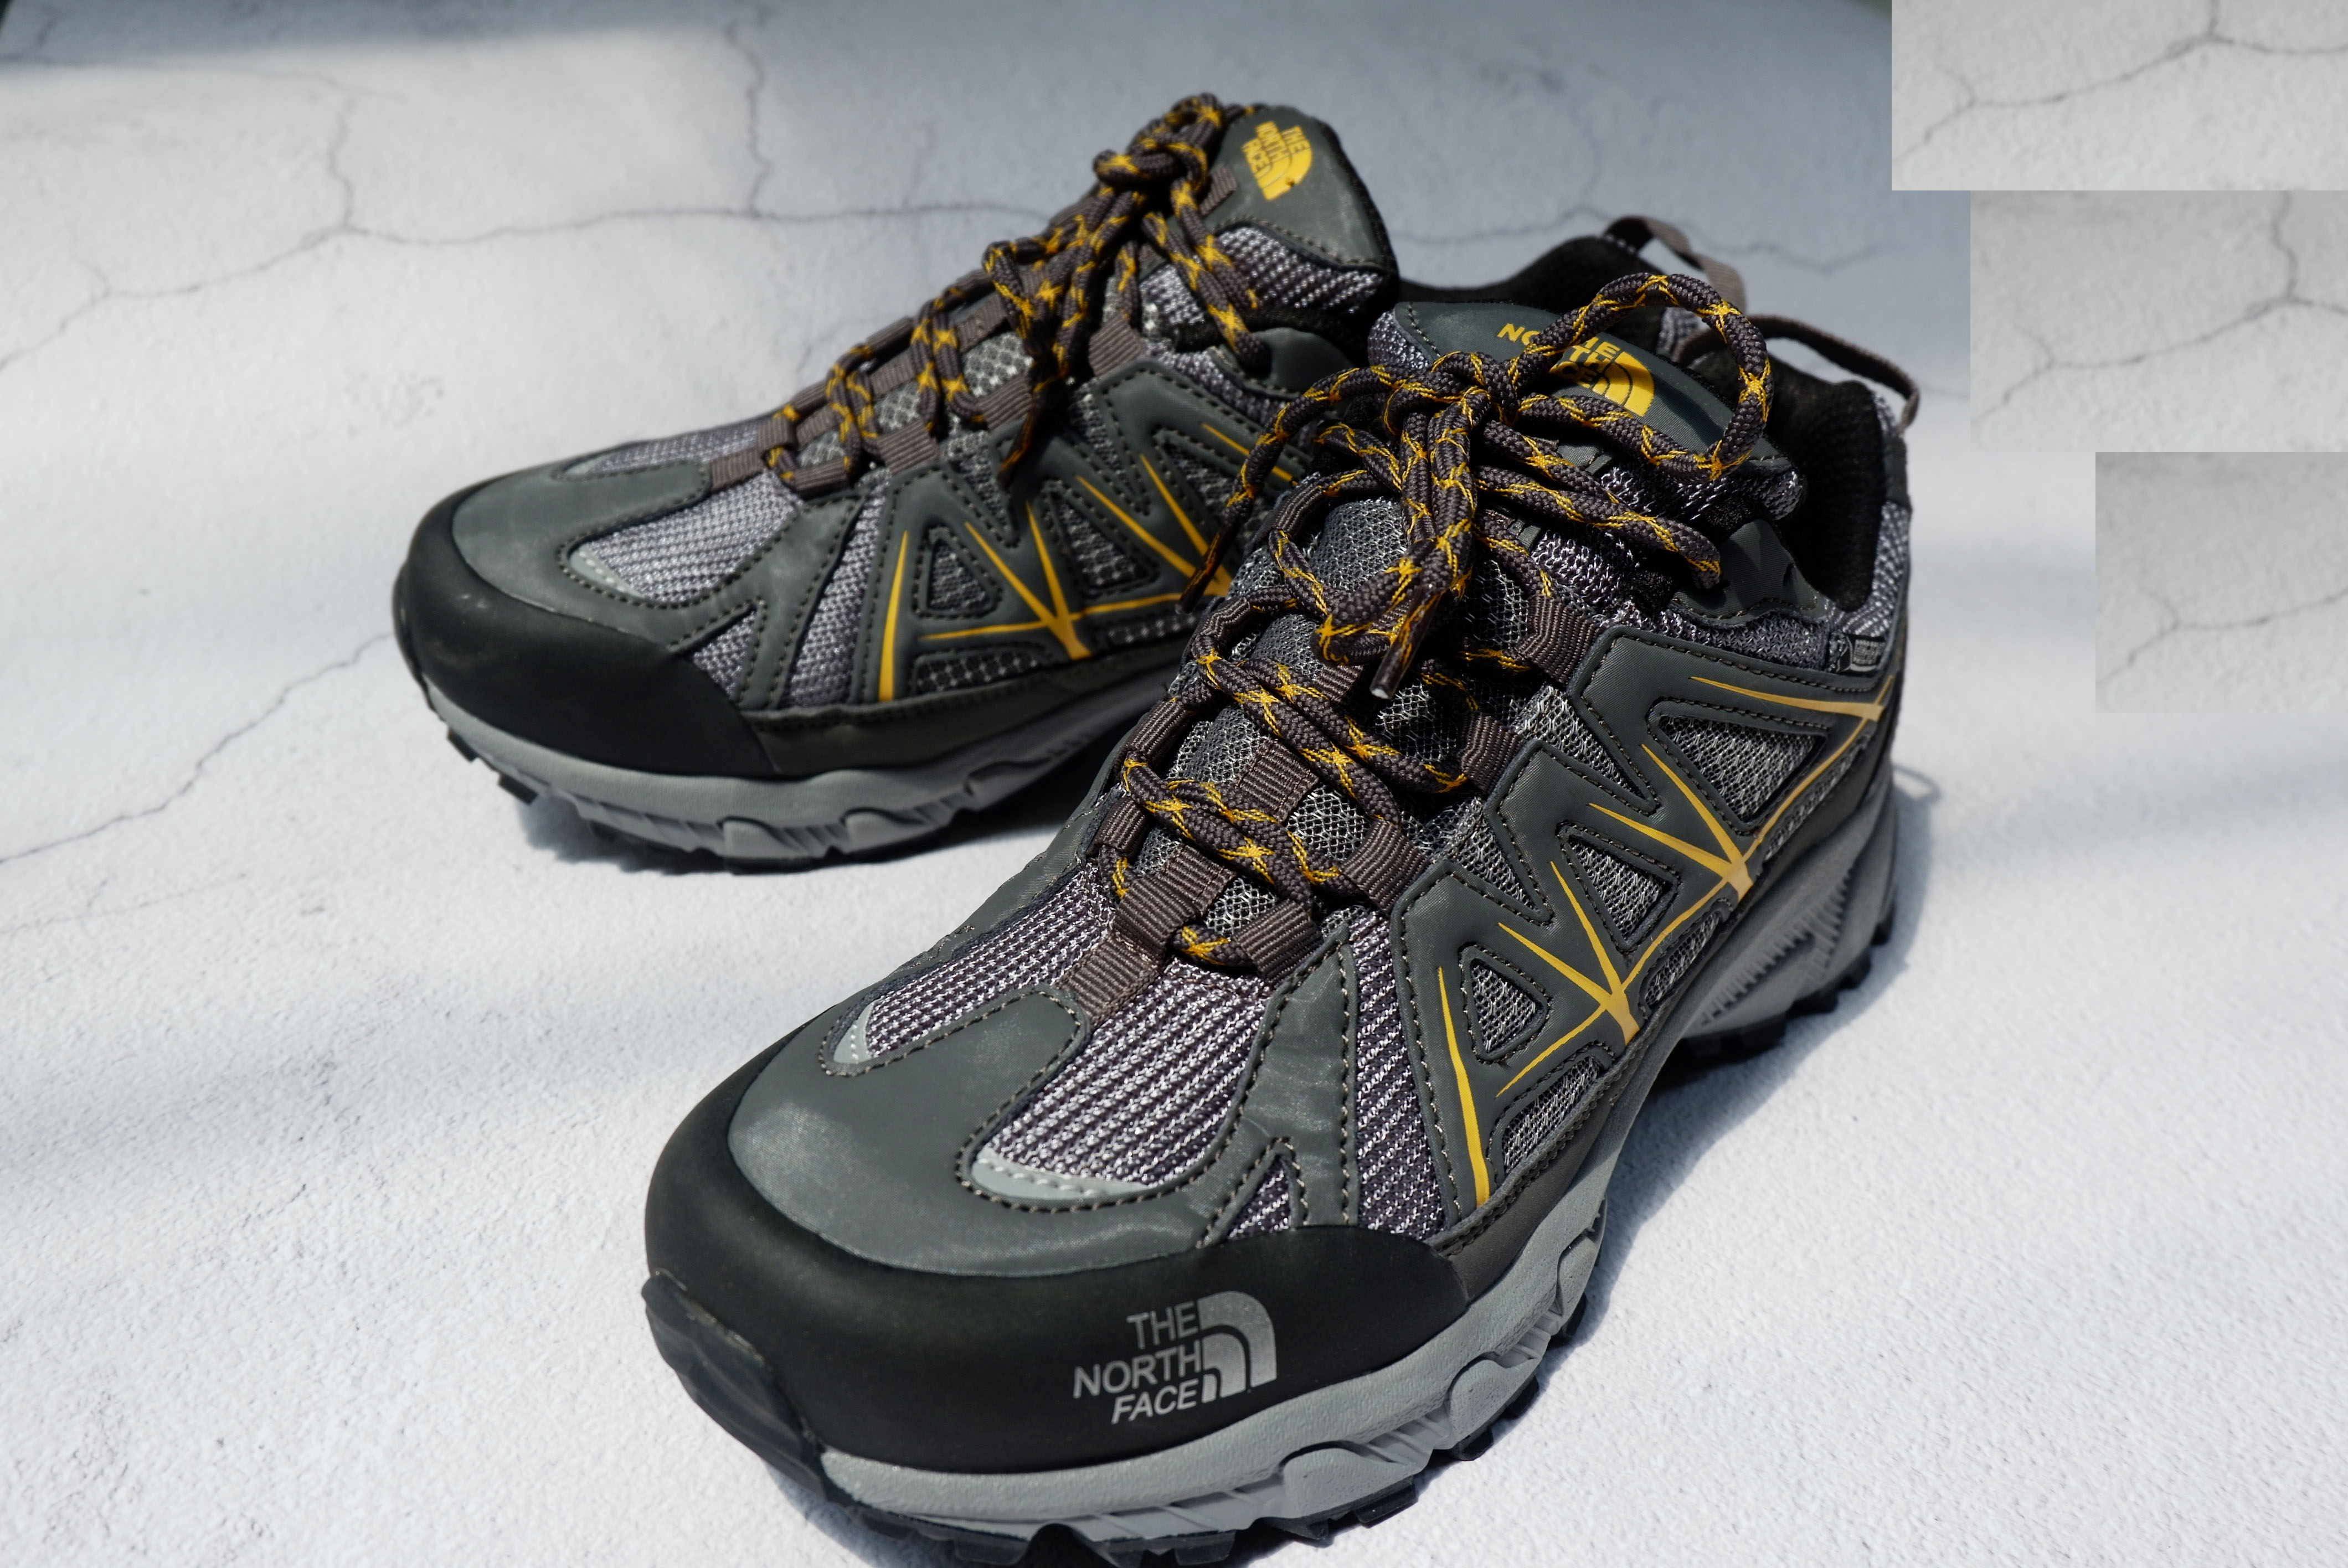 giày trekking the north face 7